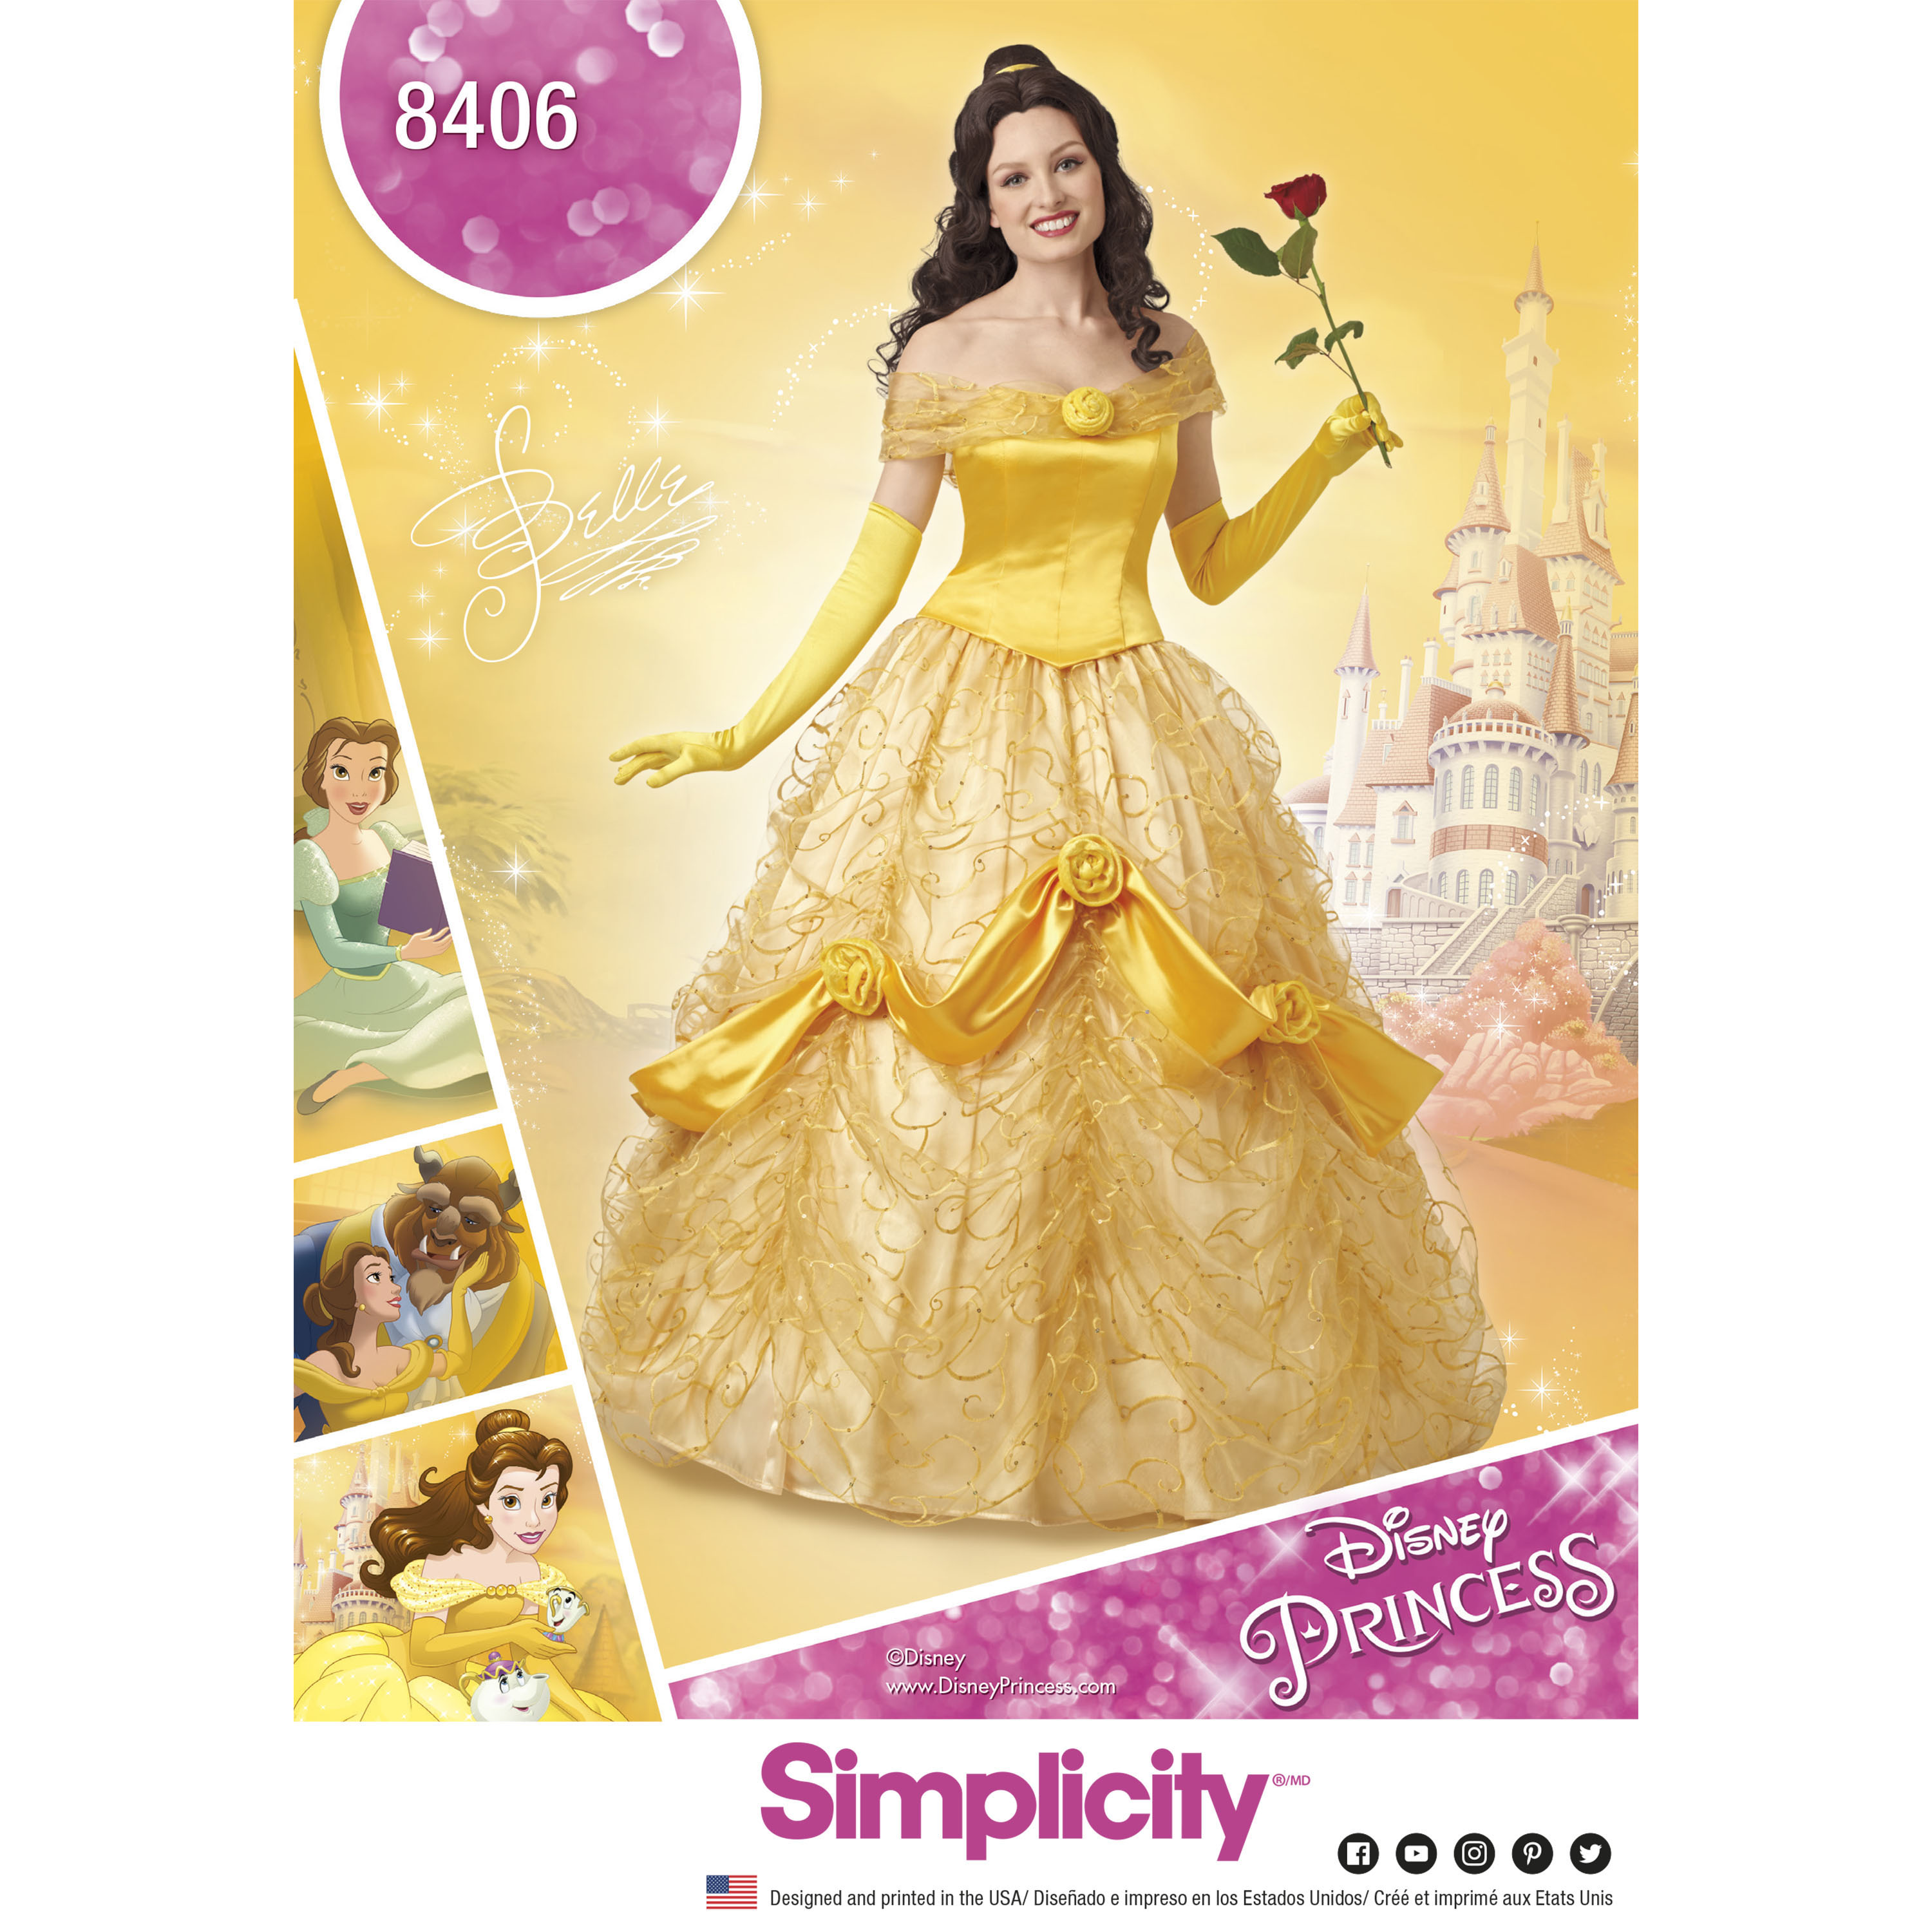 Simplicity 8406 Disney Beauty and the Beast Costume for Misses